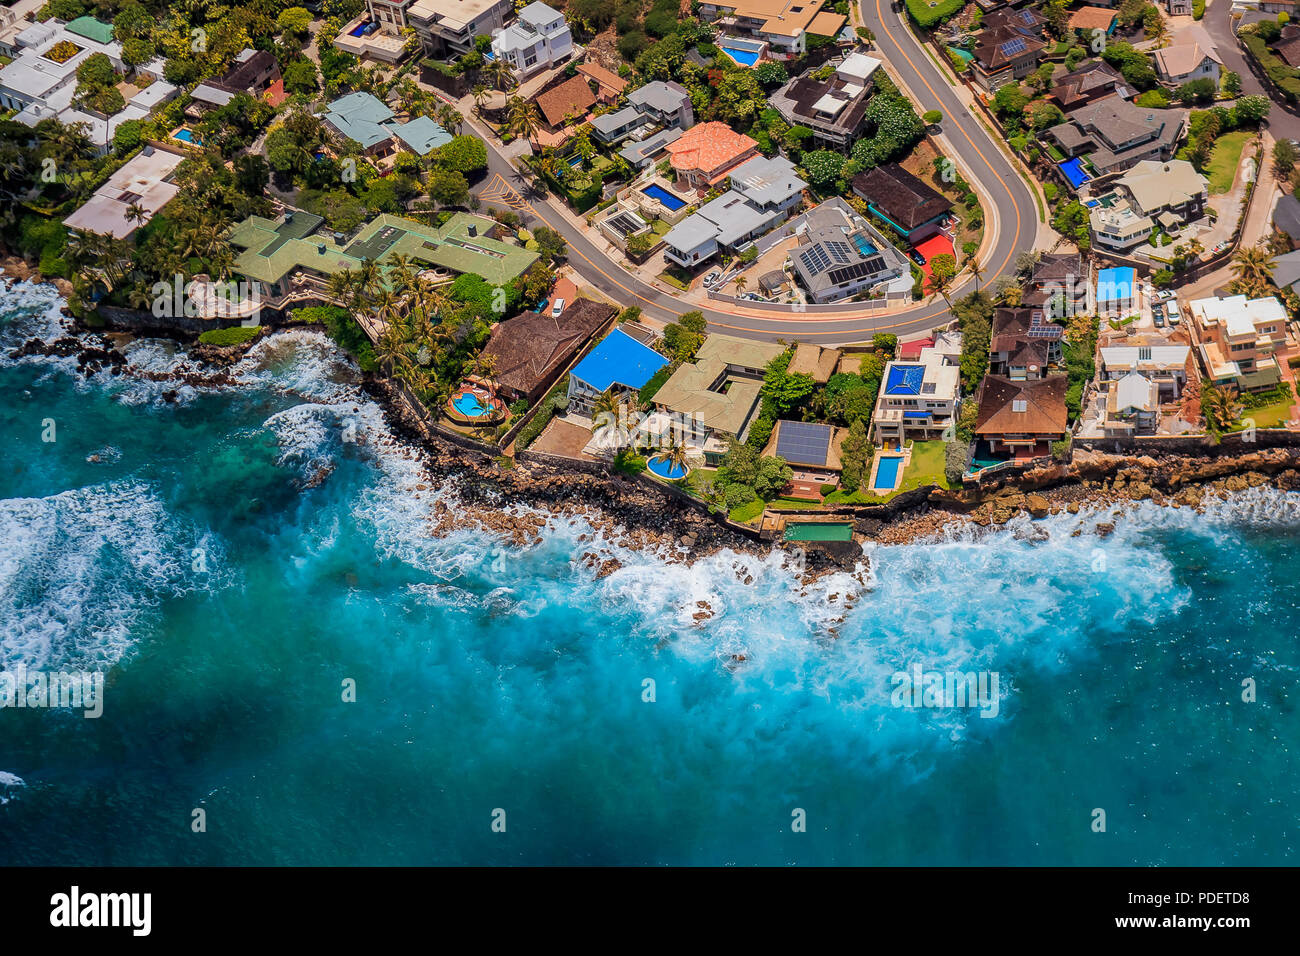 Aerial view Honolulu coastline in Hawaii from a helicopter - Stock Image